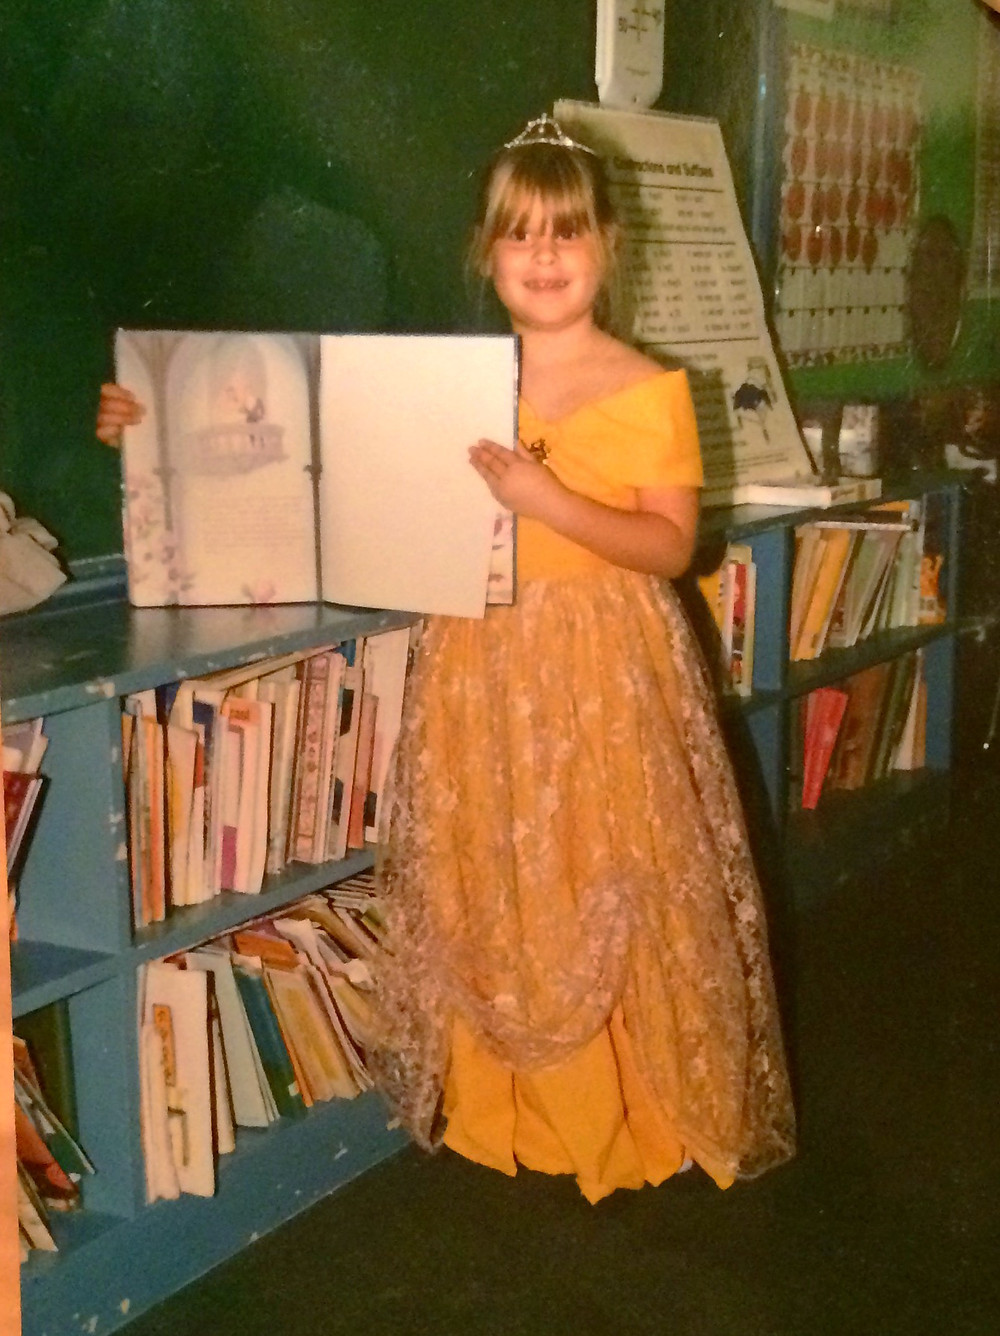 Who's excited for Beauty and the Beast? This kid.